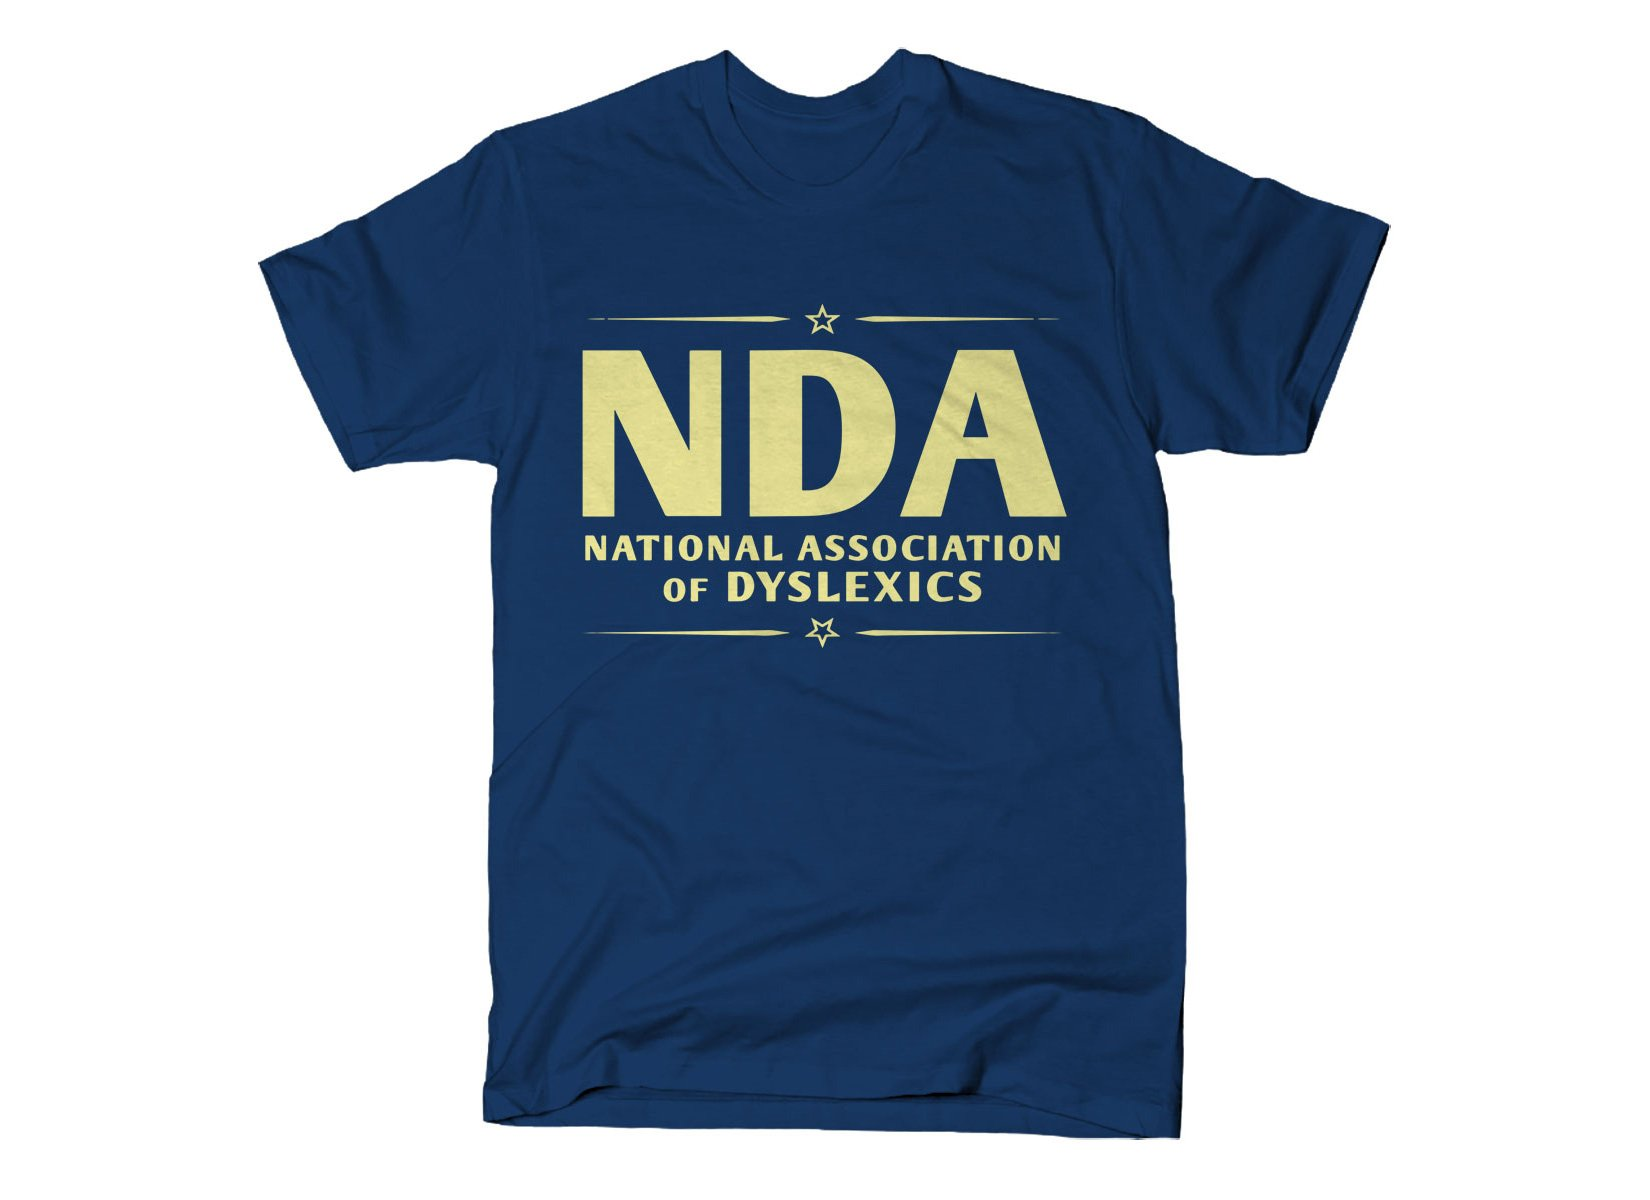 National Association of Dyslexics on Mens T-Shirt